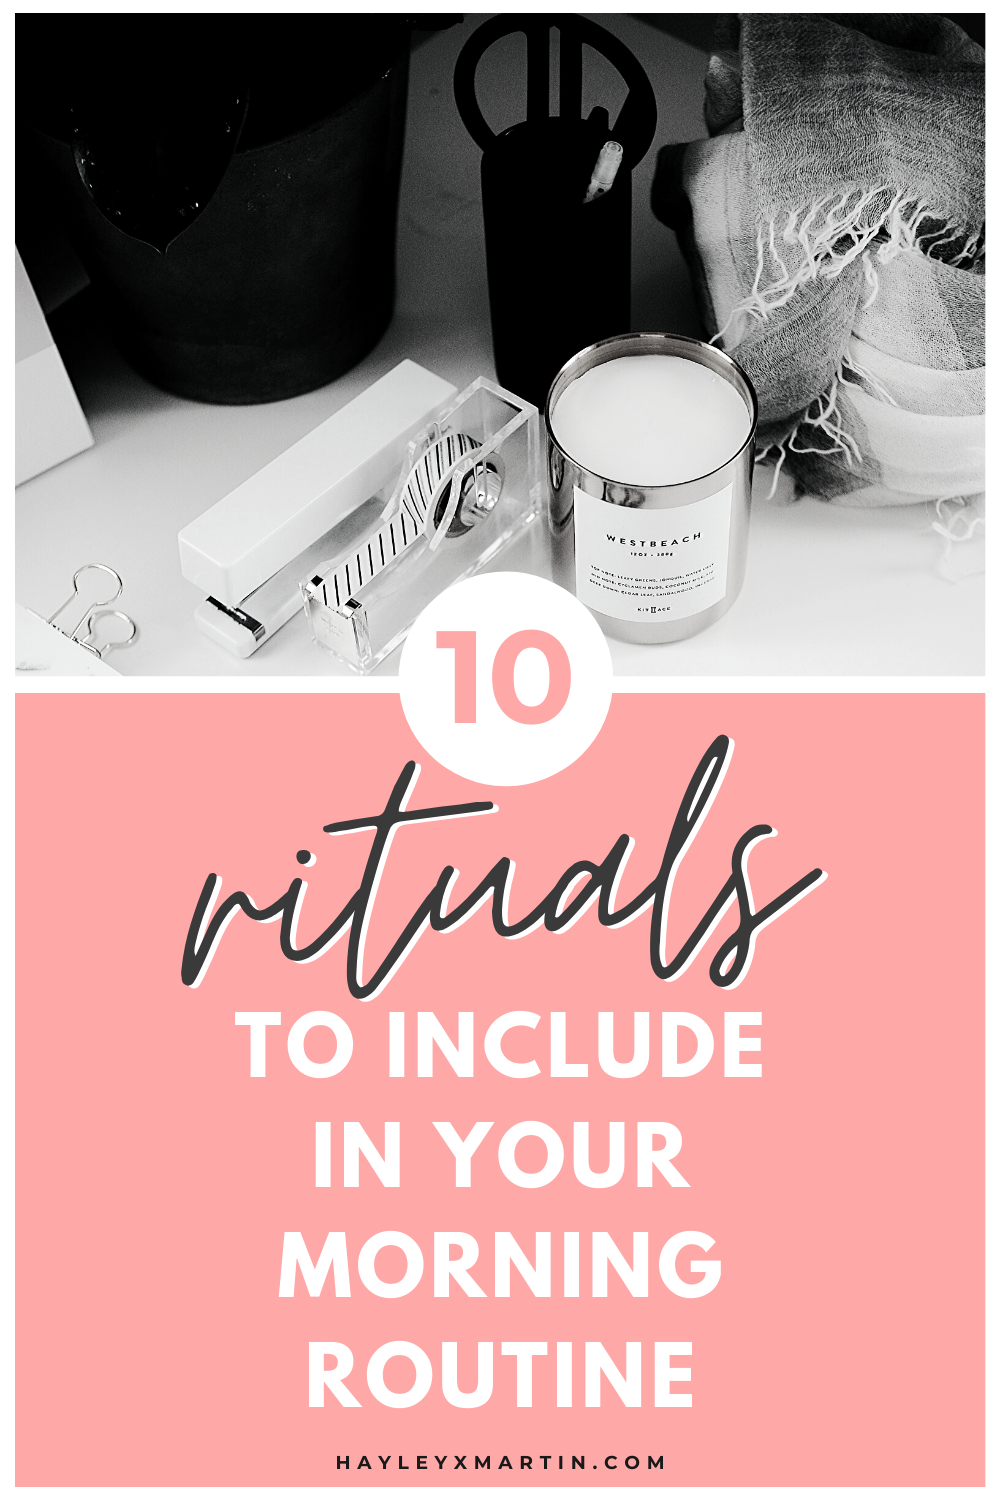 10 rituals to include in your morning routine for a positive day | hayleyxmartin